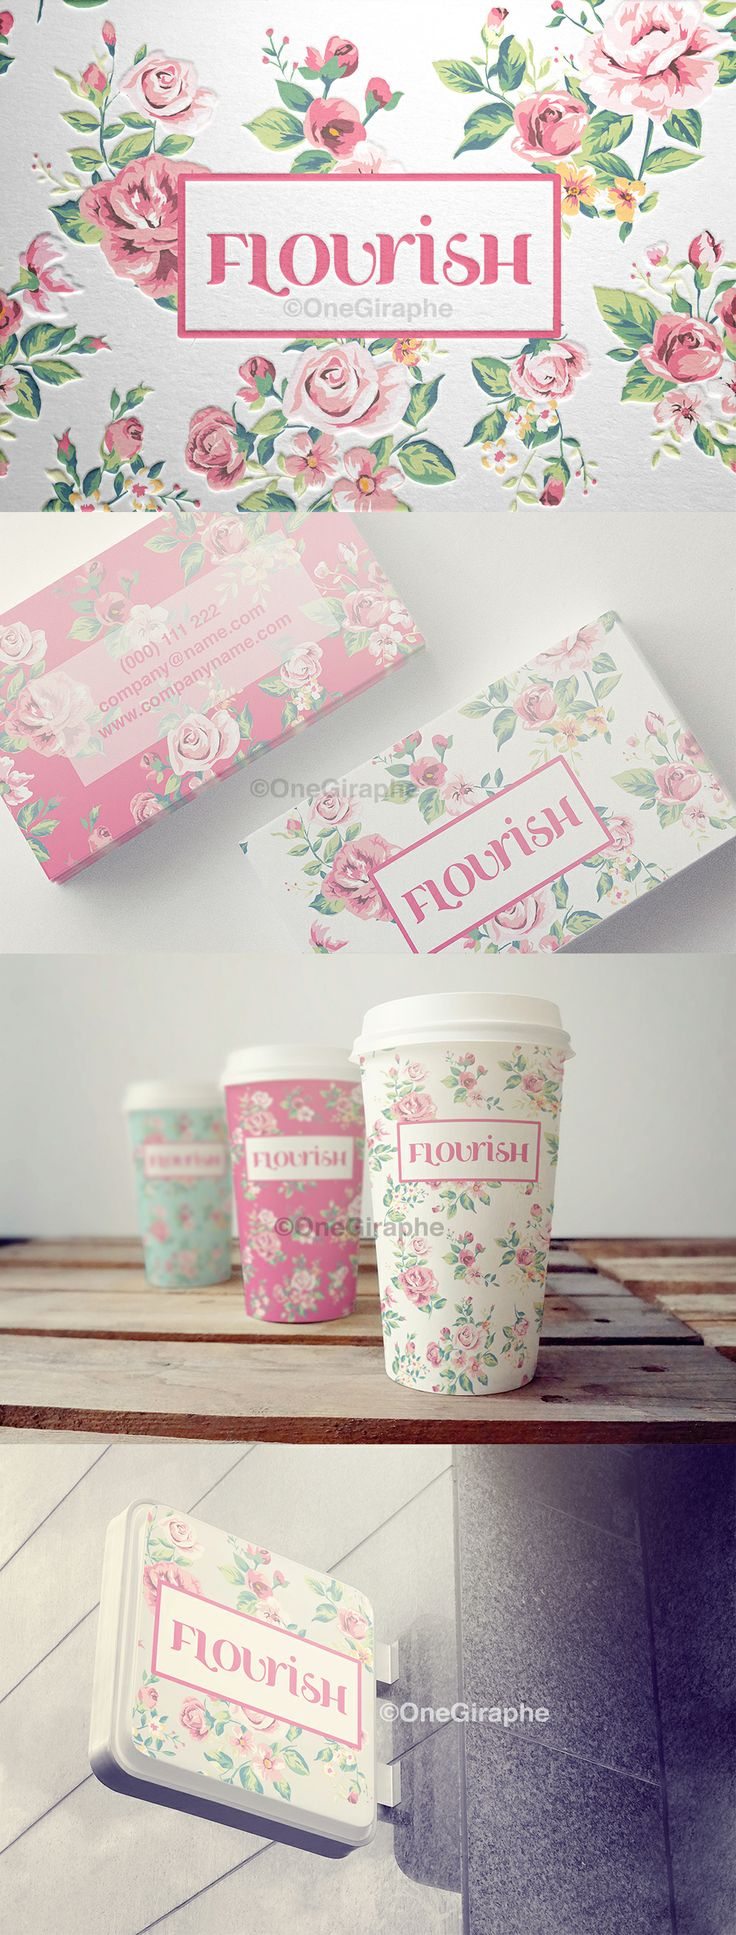 Flourish - Branding for Cake Shop #packaging #design